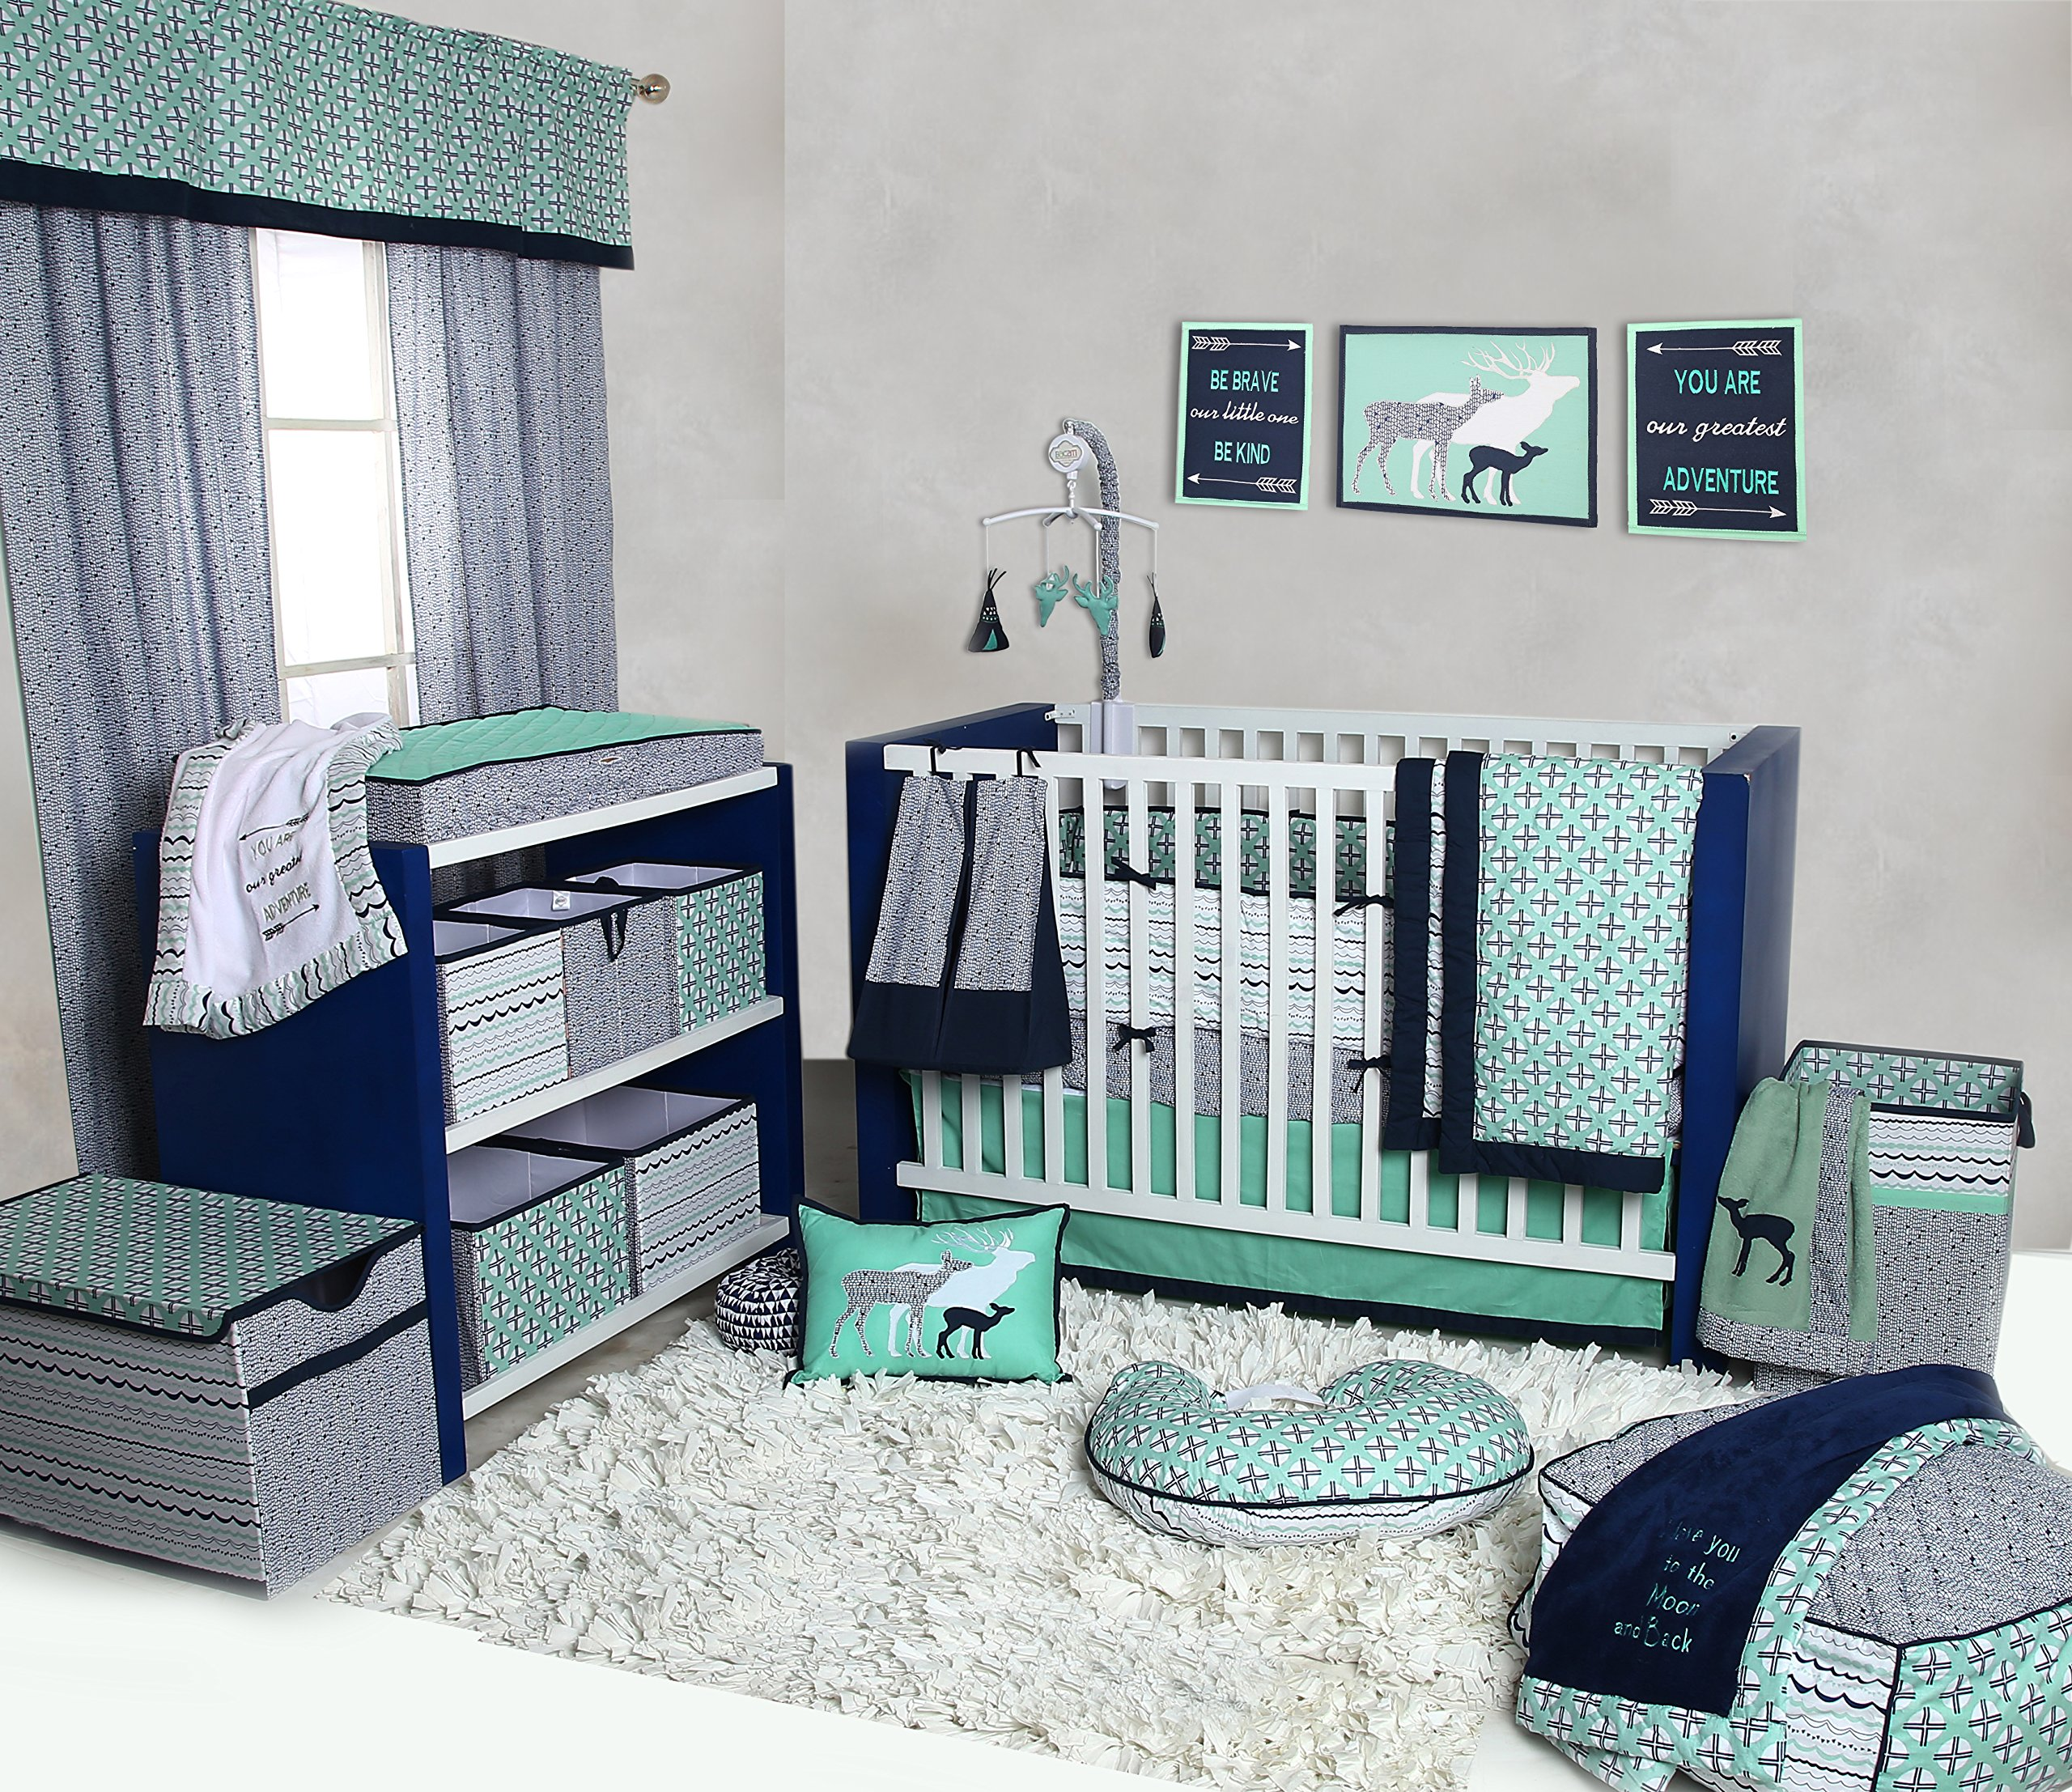 Bacati Noah Tribal 10 Piece Nursery-in-a-Bag Cotton Percale Crib Bedding Set with Bumper Pad, Mint/Navy by Bacati (Image #7)